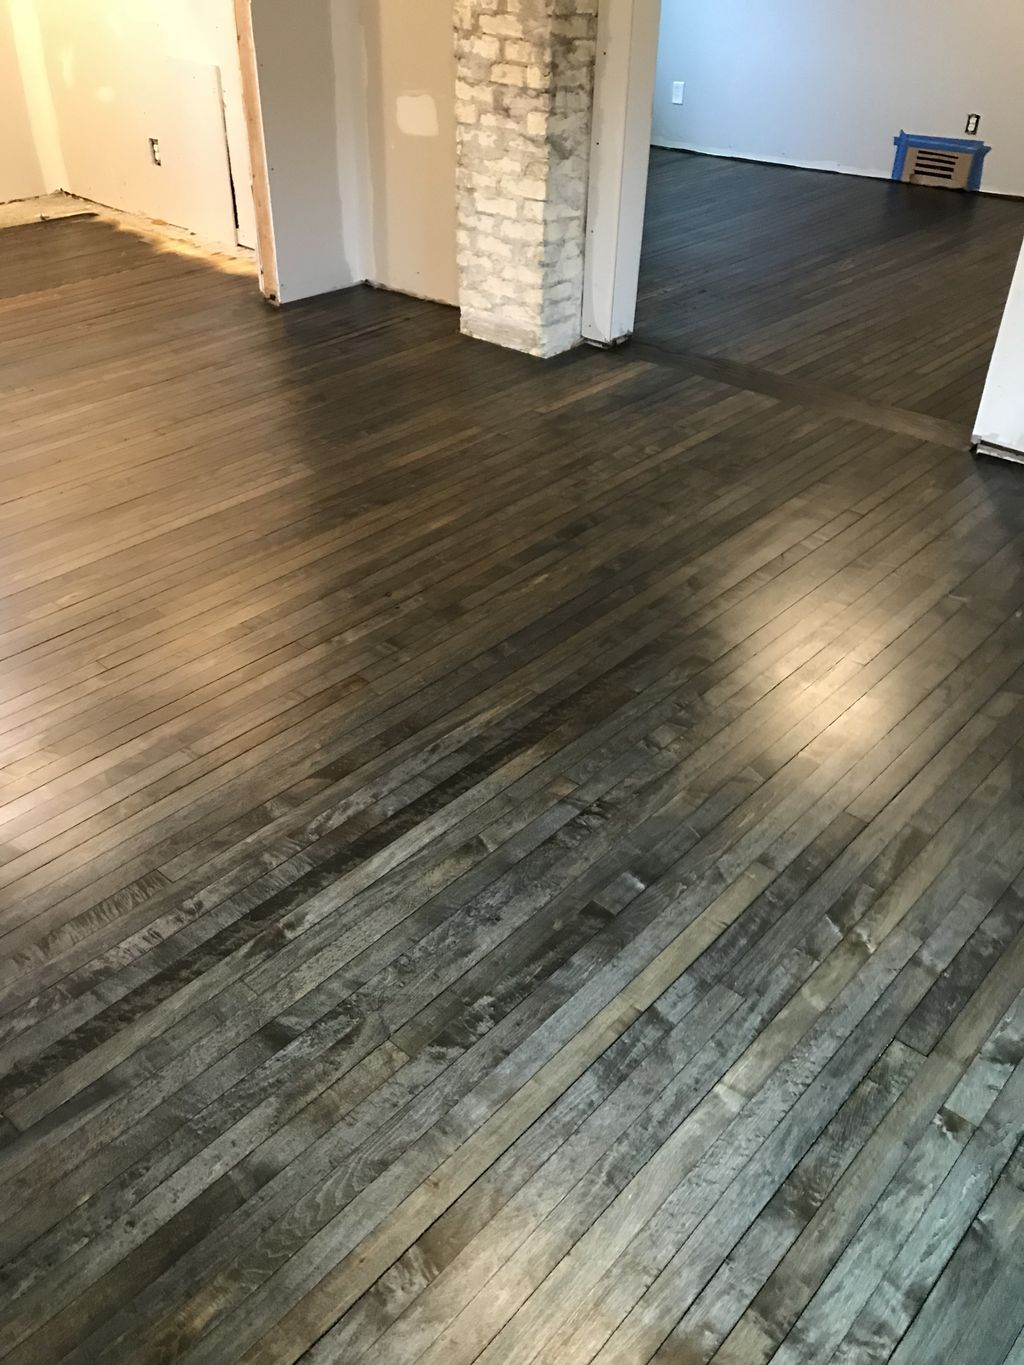 Stained Bona graphite with three coats of Bona traffic